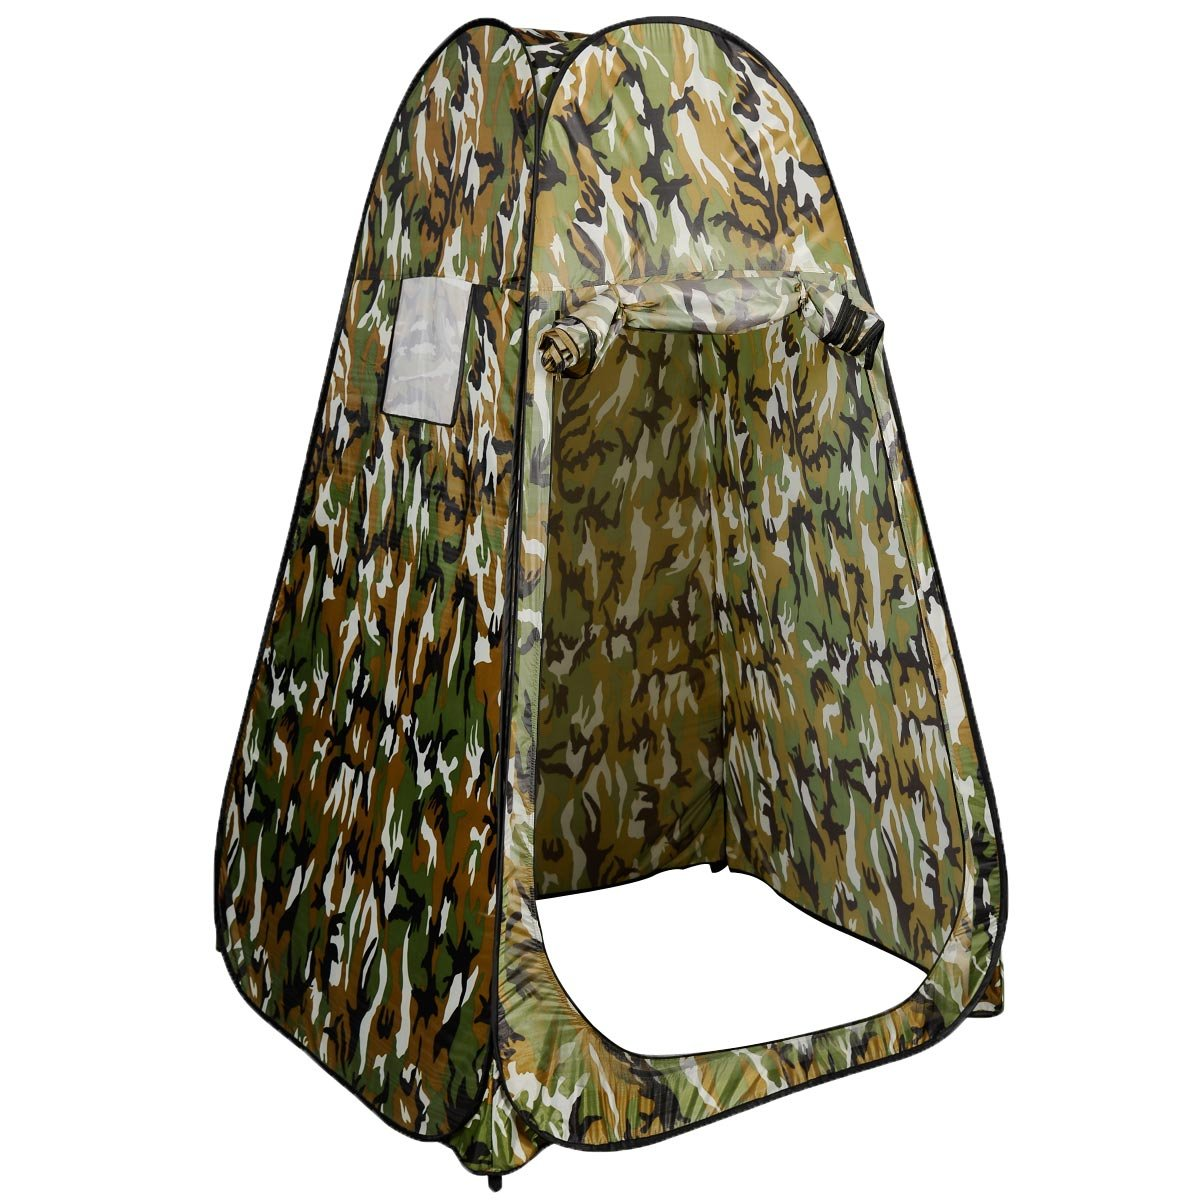 Amazon.com Super buy Portable Camo Changing Tent Pop-Up Privacy Room Bathing Toilet Shower Outdoor C&ing Shelter w/ Carrying Bag (Camouflage) Sports u0026 ...  sc 1 st  Amazon.com & Amazon.com: Super buy Portable Camo Changing Tent Pop-Up Privacy ...